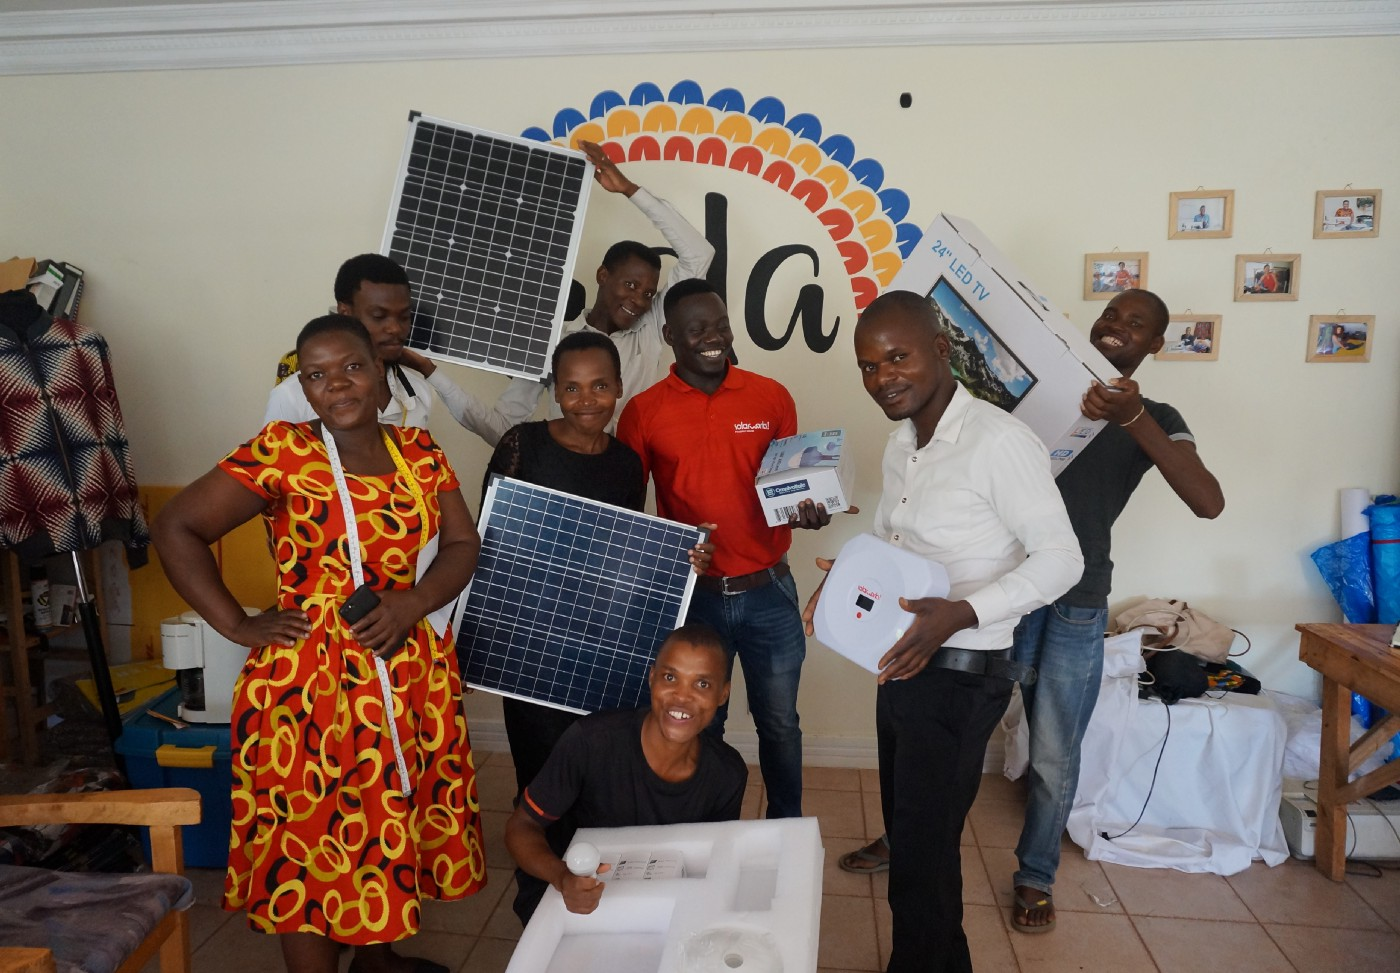 SolarWorks! has added solar TVs to its product offering